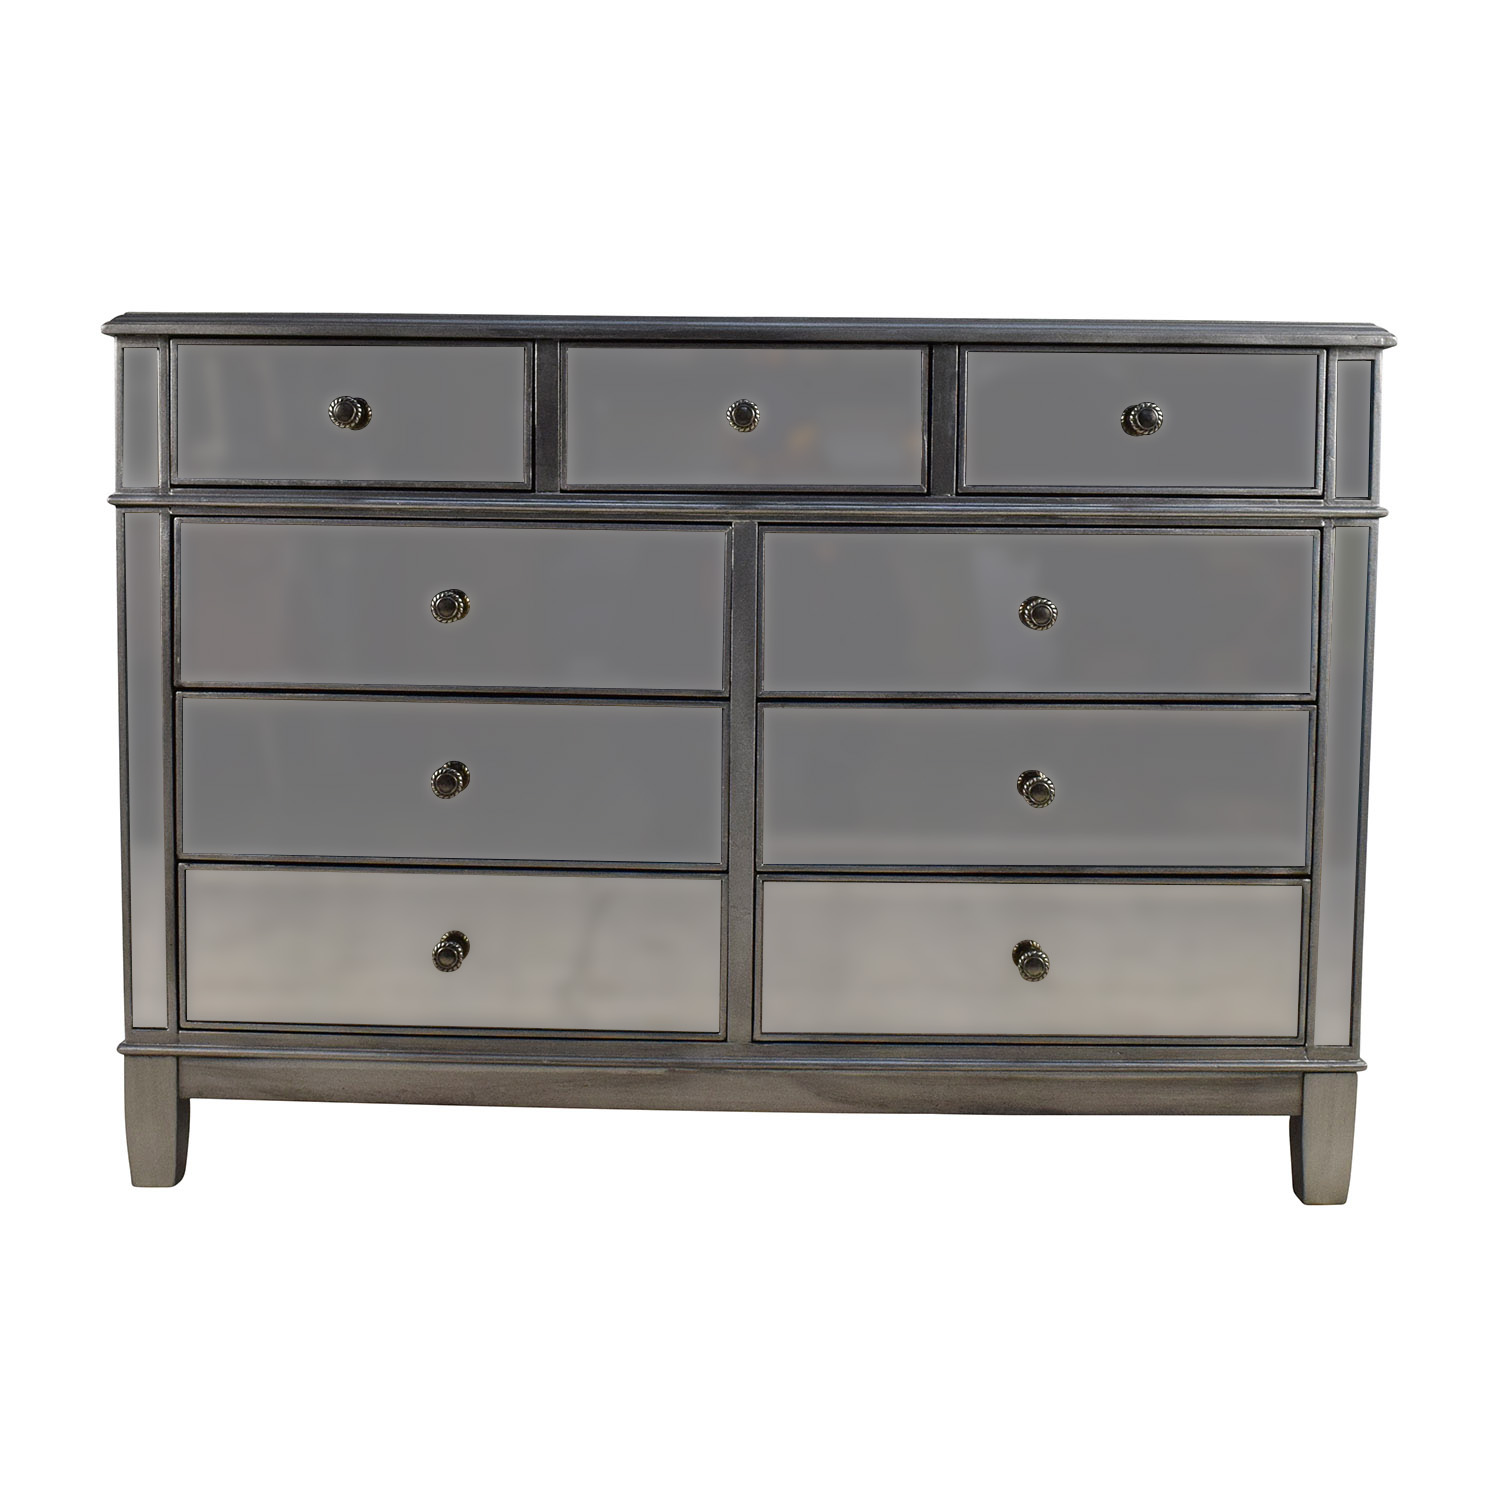 Pier 1 Pier 1 Hayworth Collection Mirrored Silver Dresser coupon